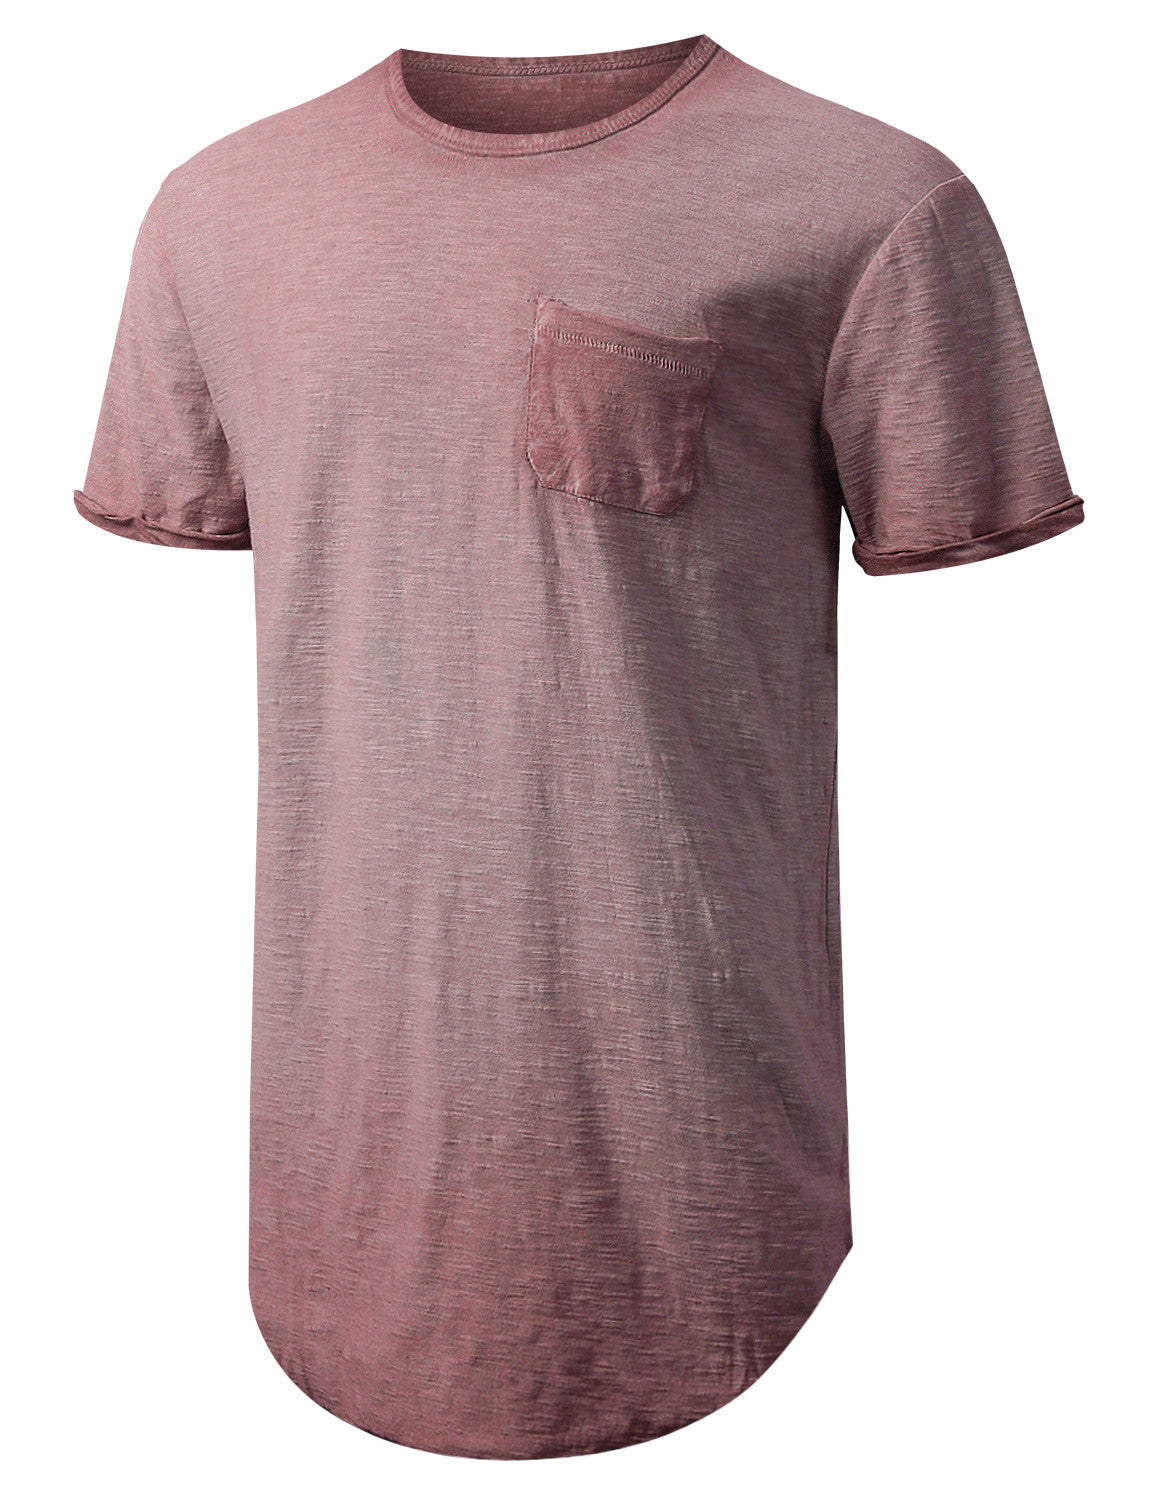 RED Washed Rolled Sleeve Longline T-shirt - URBANCREWS